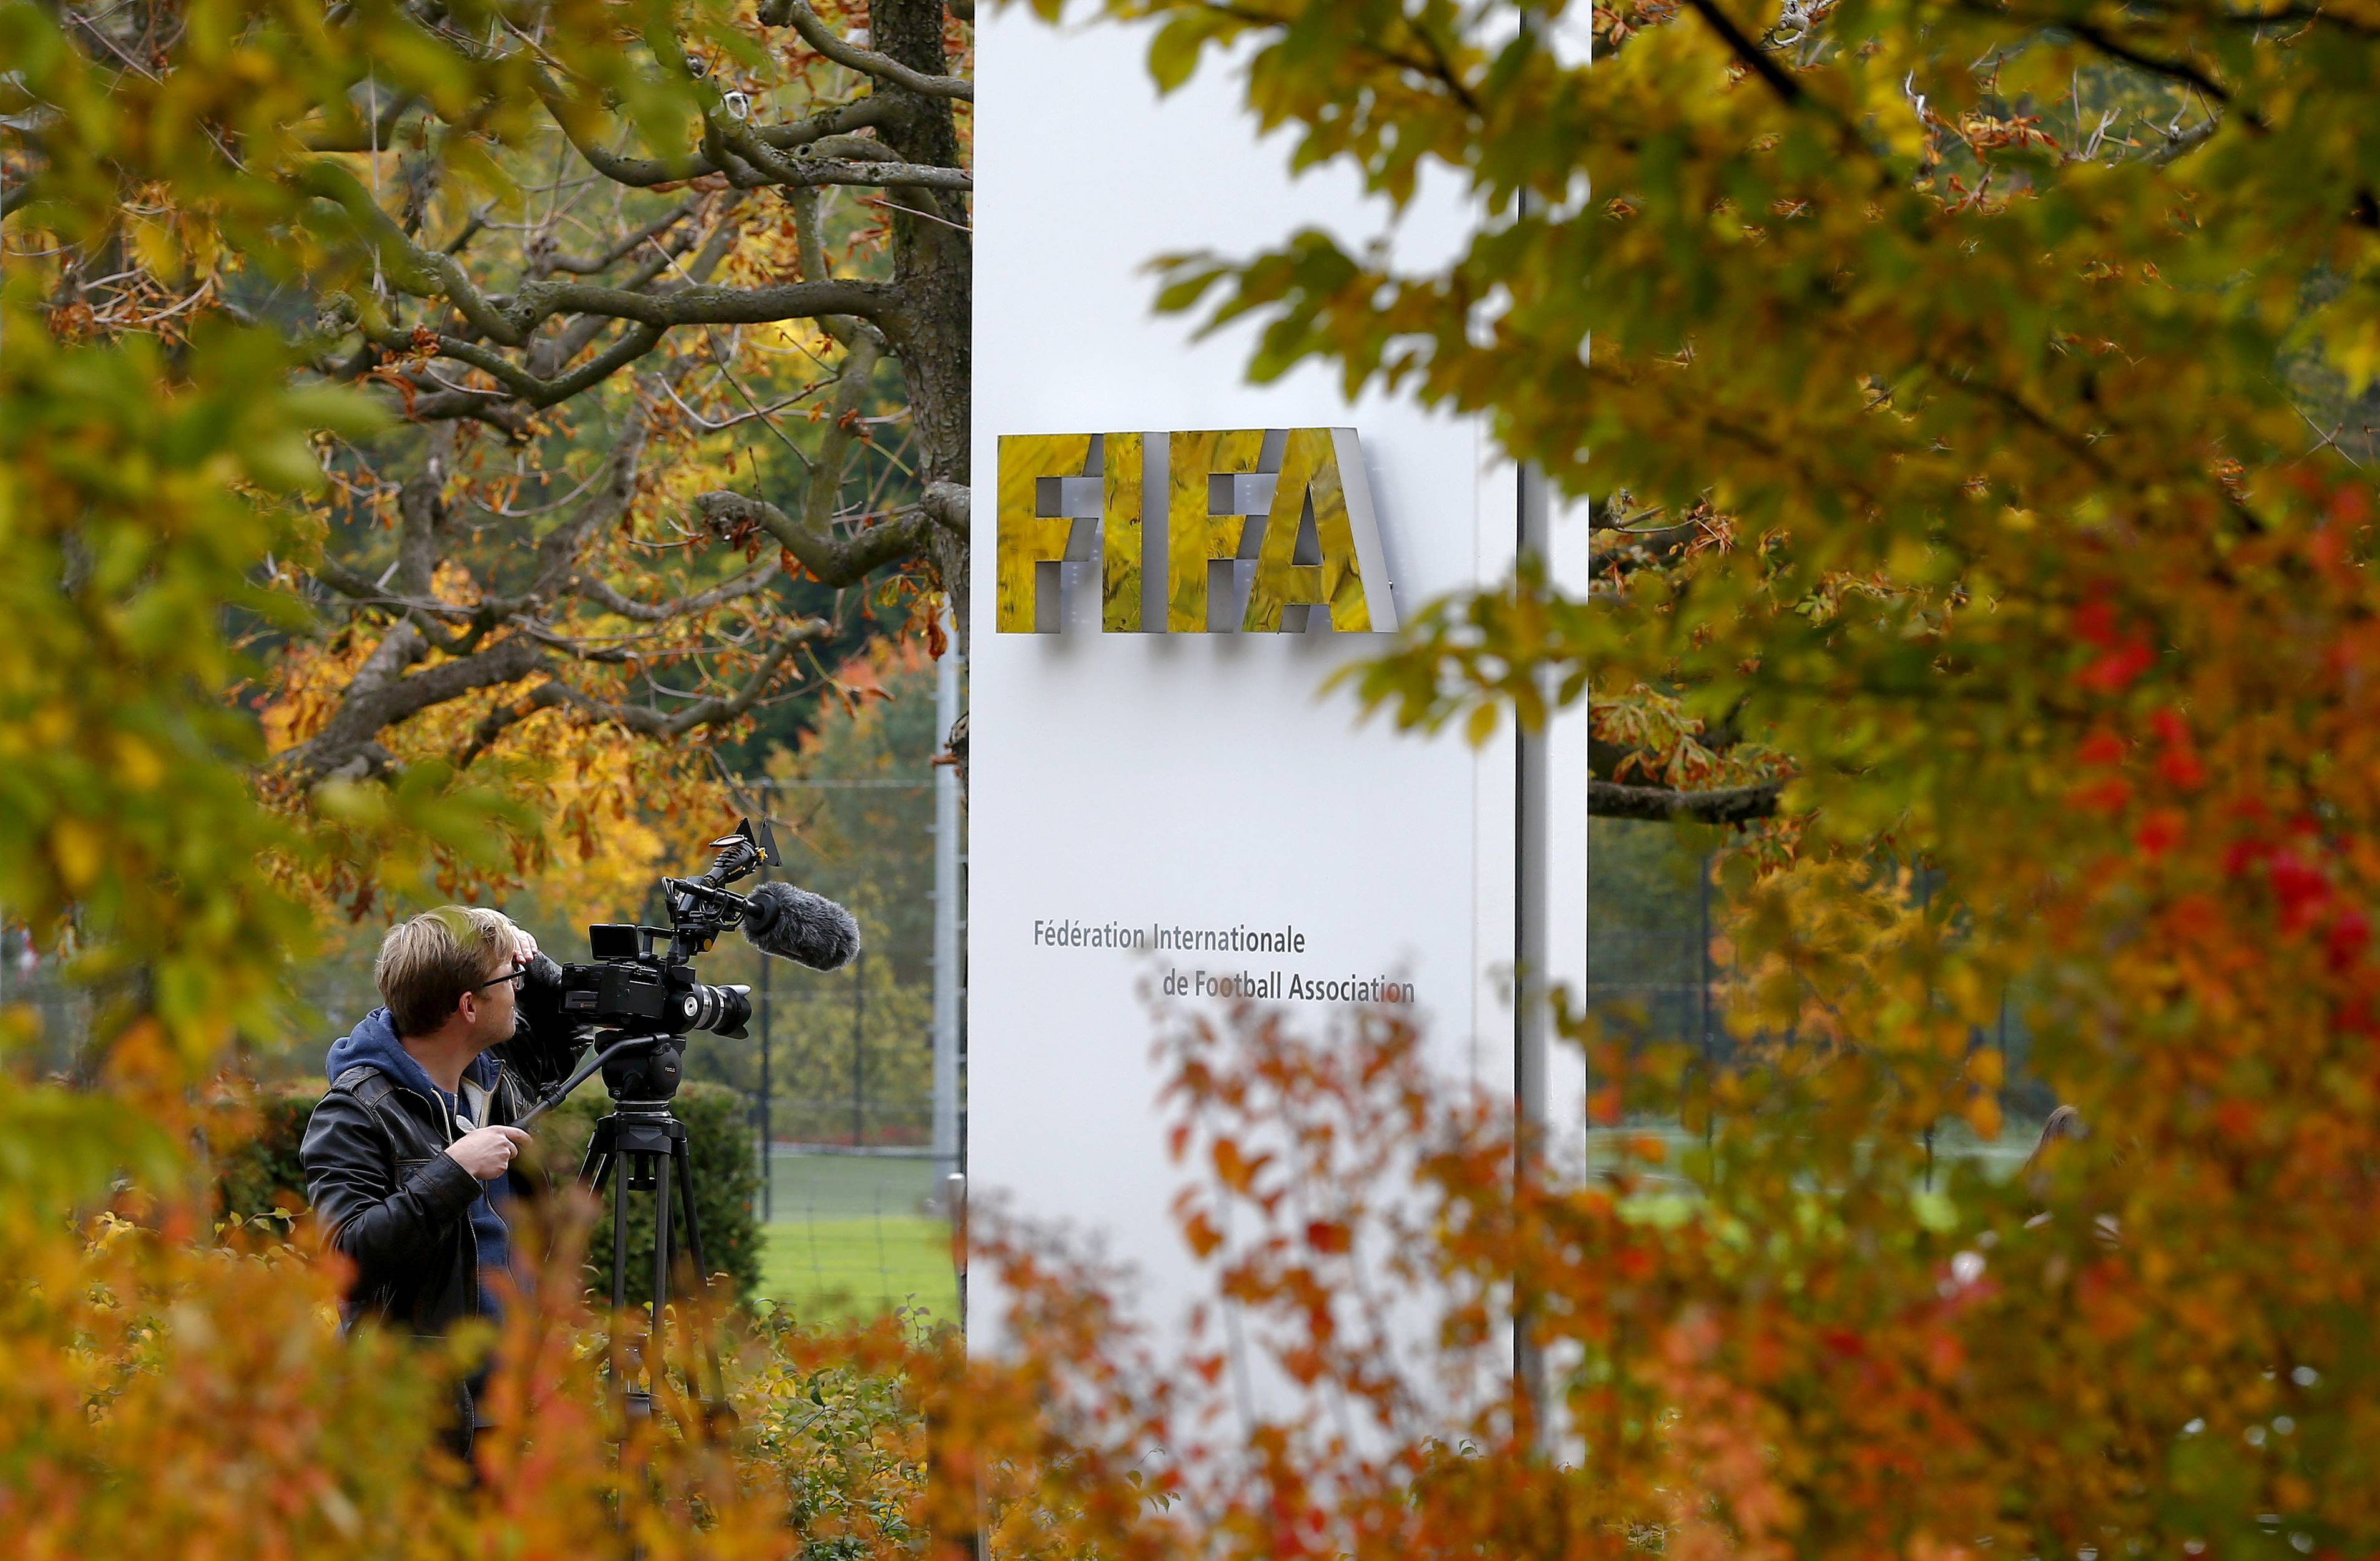 A cameraman stands in front of FIFA's headquarters in Zurich, Switzerland October 8, 2015. FIFA President Sepp Blatter and his possible successor, UEFA chief Michel Platini, have been provisionally suspended for 90 days by the global soccer body's ethics committee. REUTERS/Arnd Wiegmann